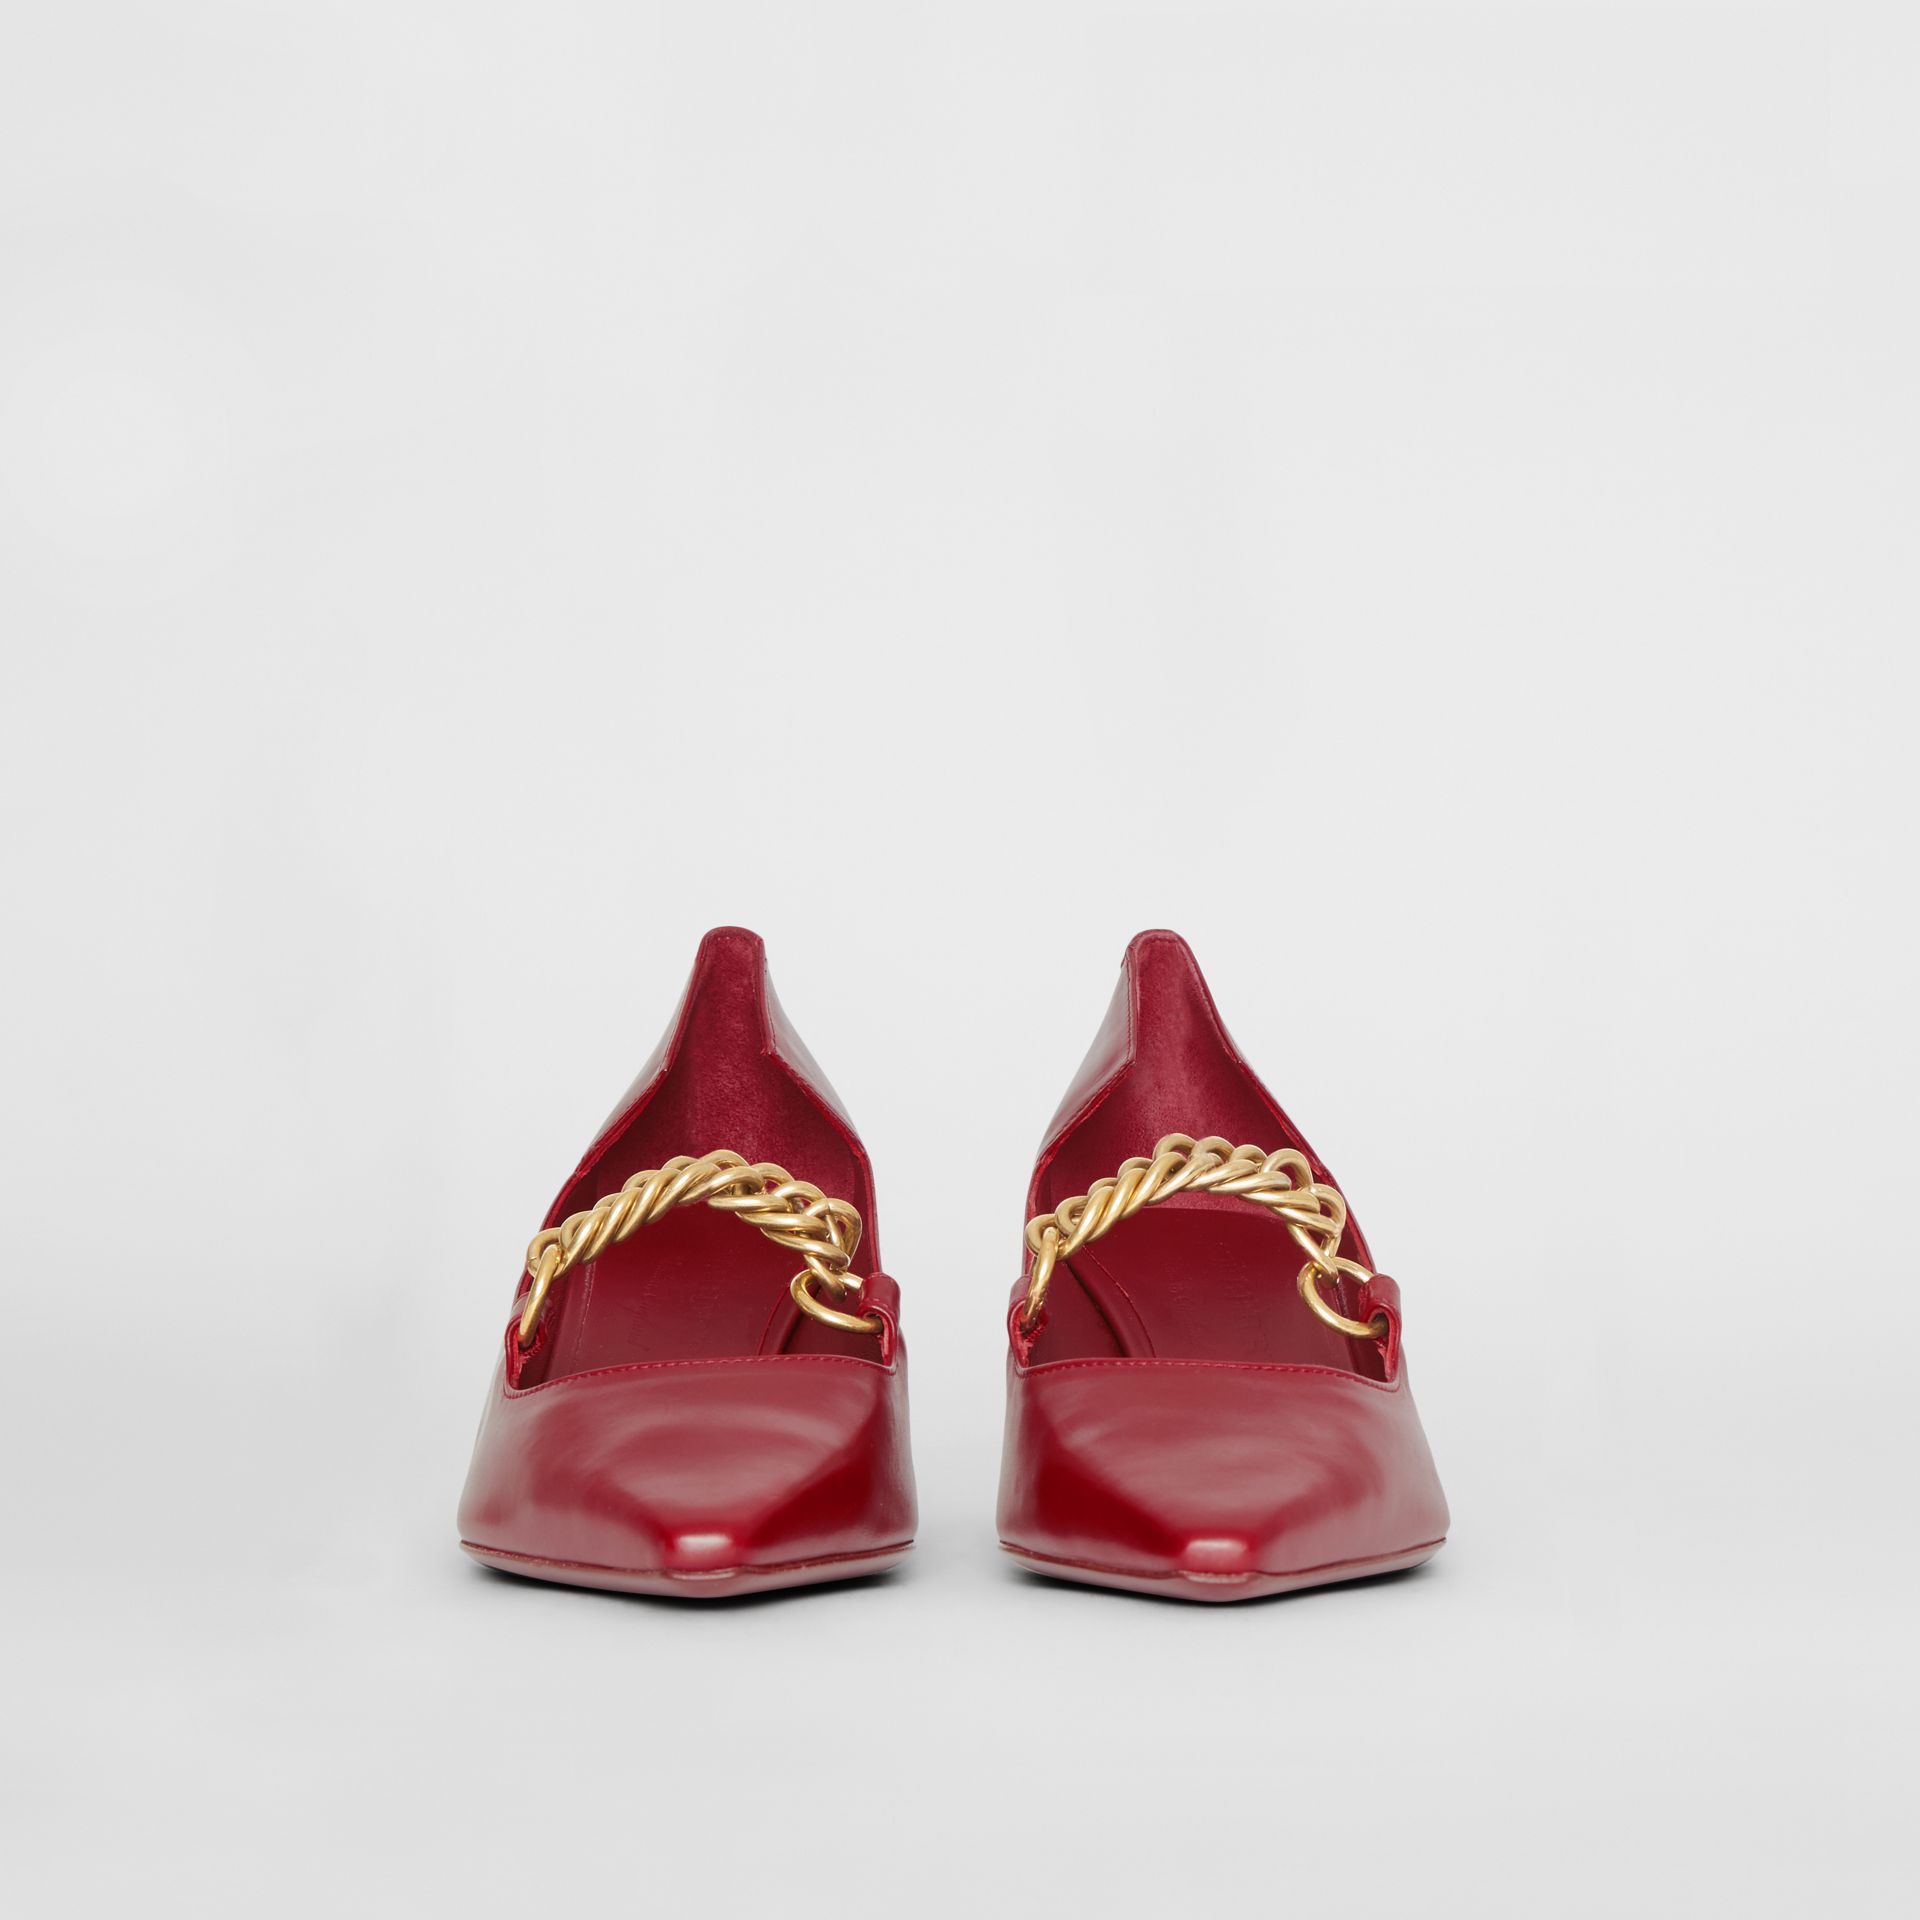 Link Detail Leather Point-toe Pump in Claret - Women | Burberry Canada - gallery image 3